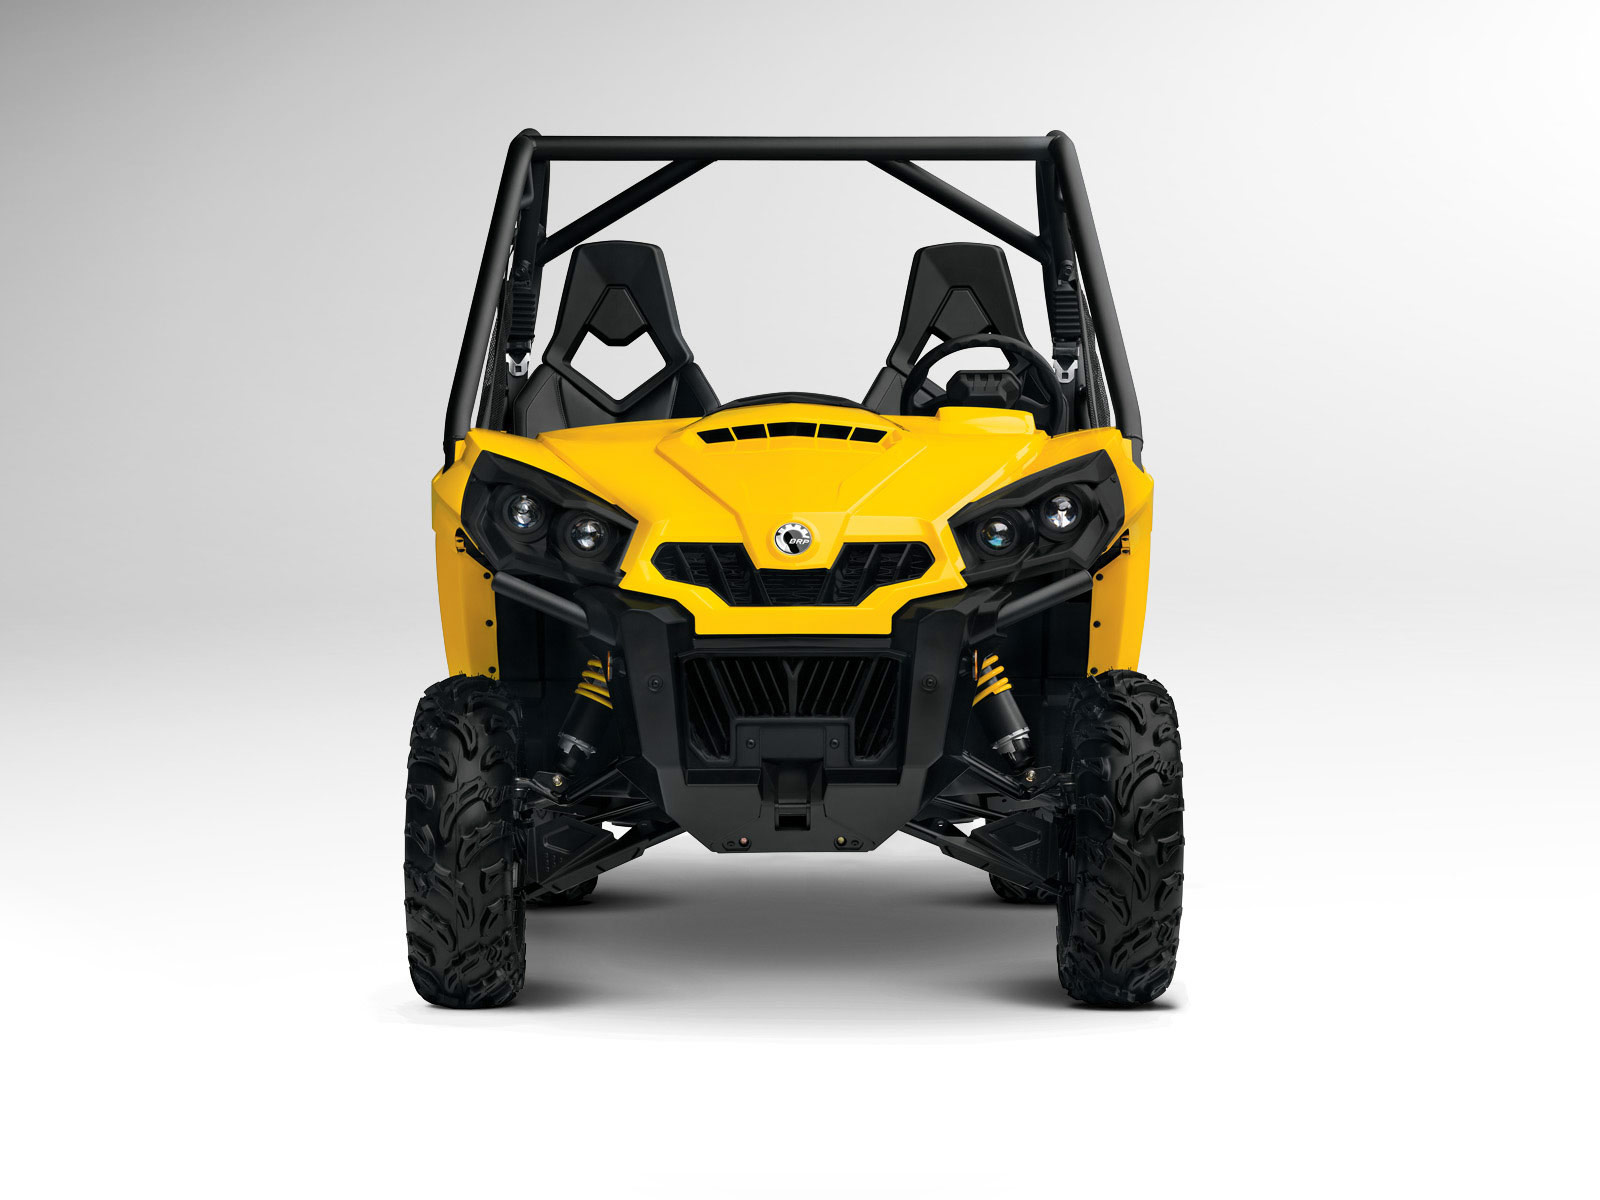 2012 Can-Am Commander 1000 ATV pictures 5